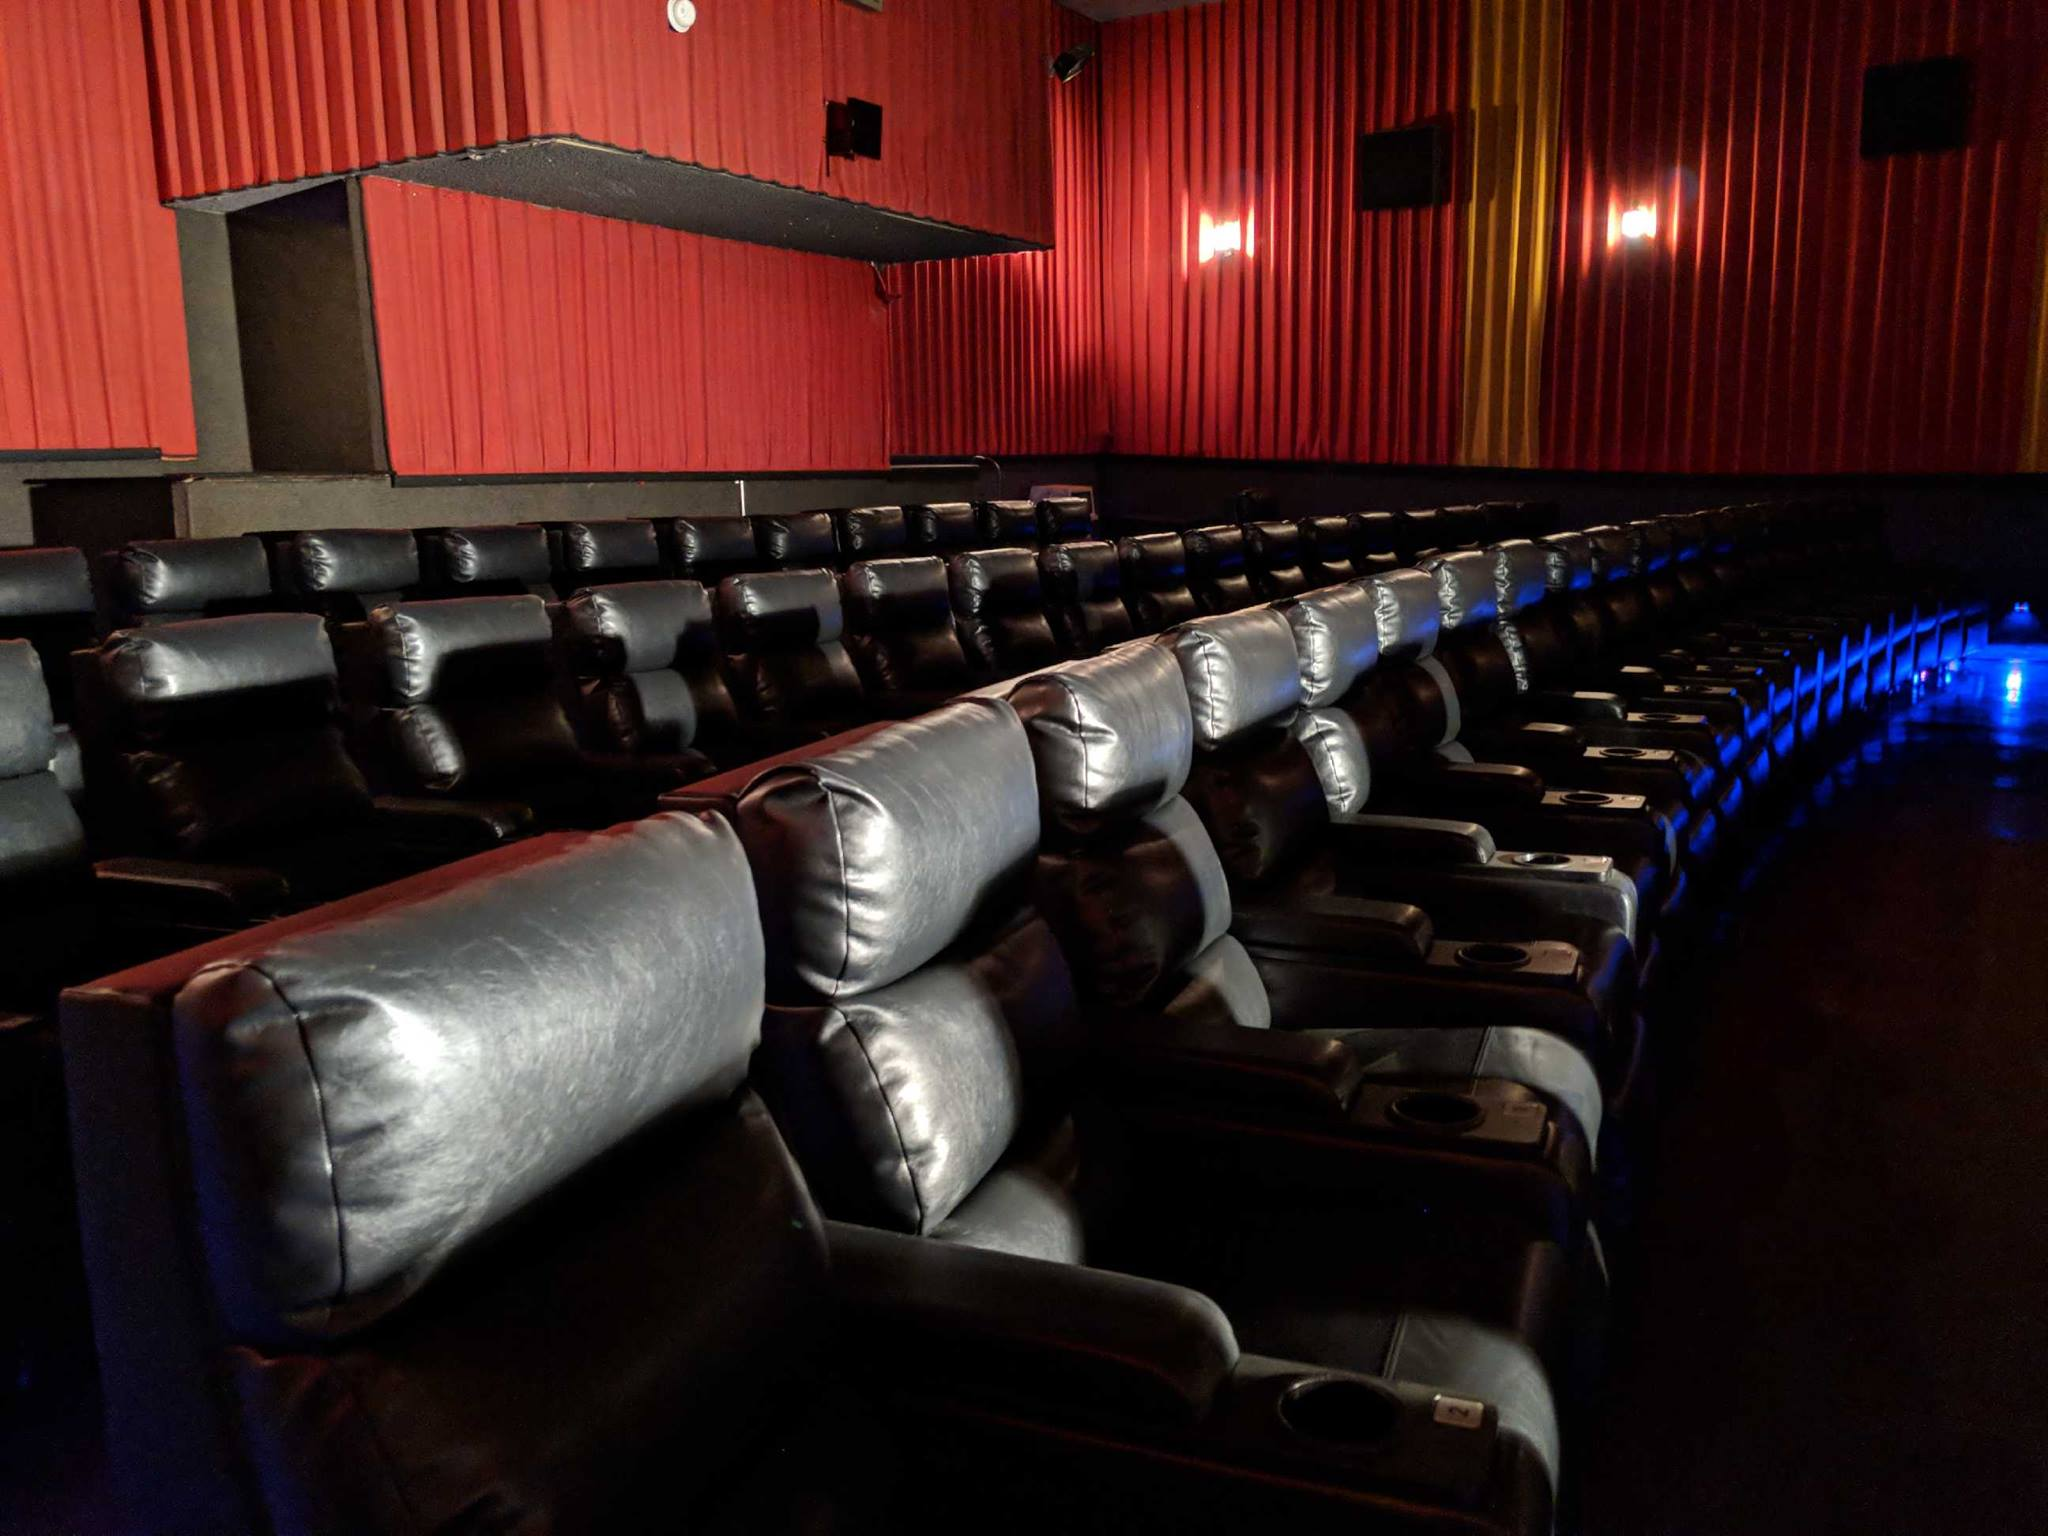 Theatre Amenities; 3 Hours free parking in garage behind theatre; DOLBY SURROUND ; Digital Projection; Huge wall to wall curved screens; Stadium seating with high back rocking chairs.